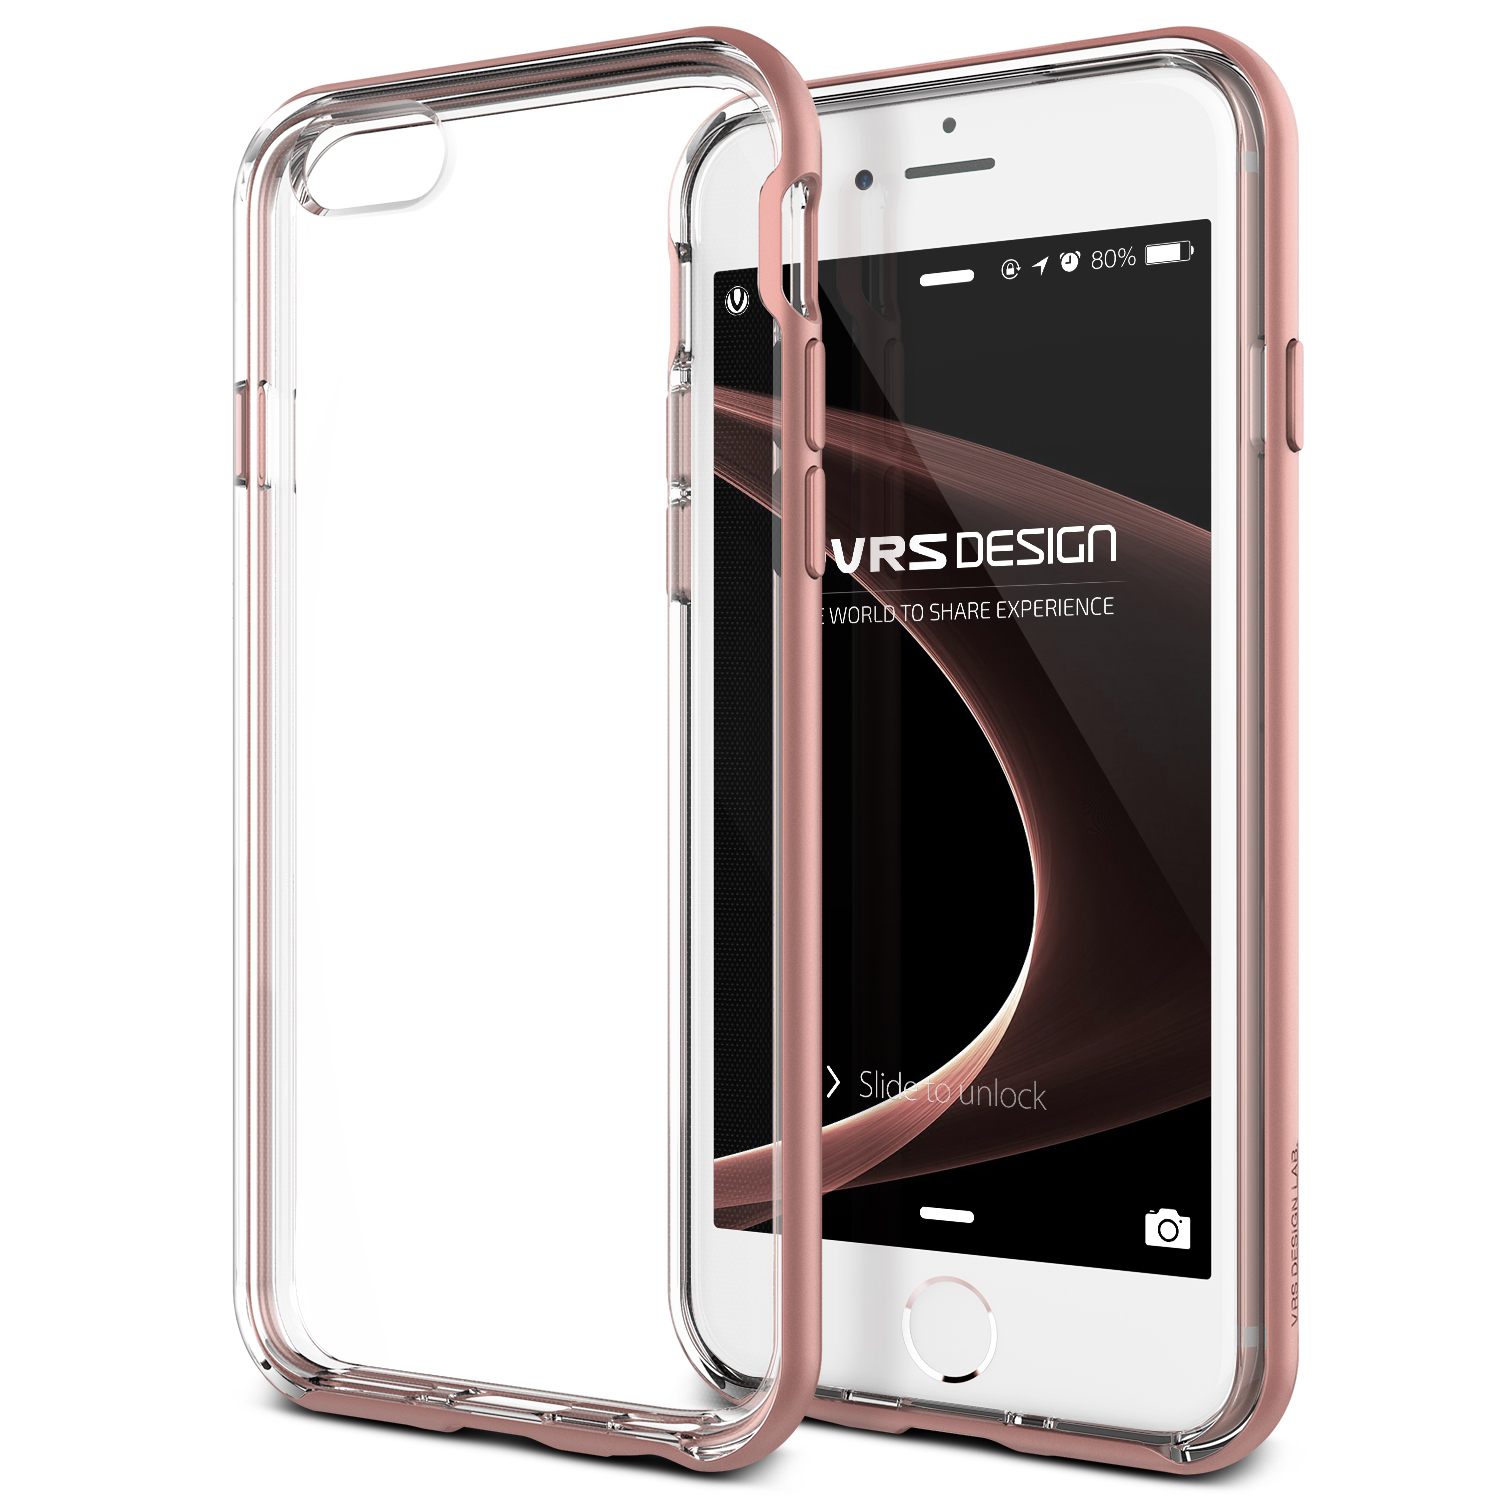 iPhone 6S Case Cover | Clear TPU with Rugged Protection | VRS Design Crystal Bumper for Apple iPhone 6S